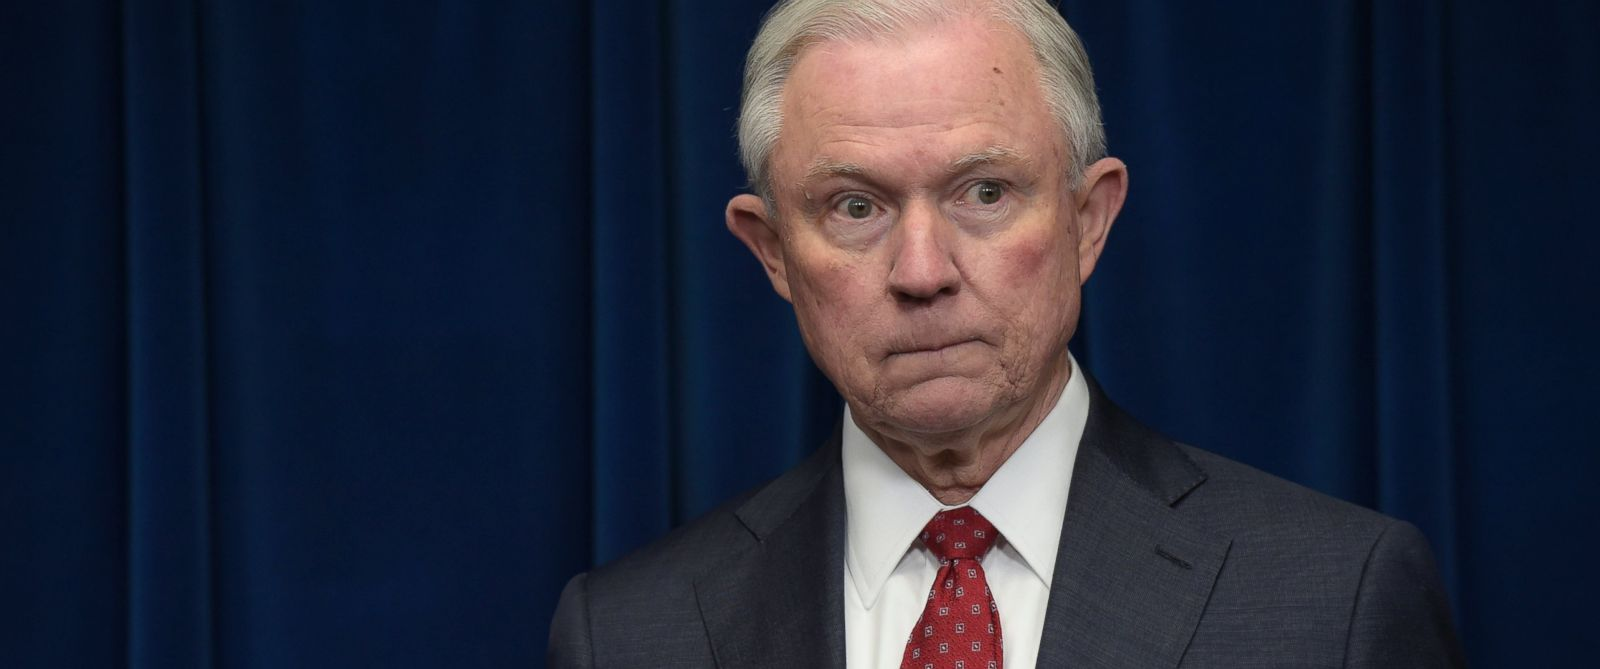 PHOTO: Attorney General Jeff Sessions waits to make a statement at the U.S. Customs and Border Protection office in Washington, March 6, 2017.